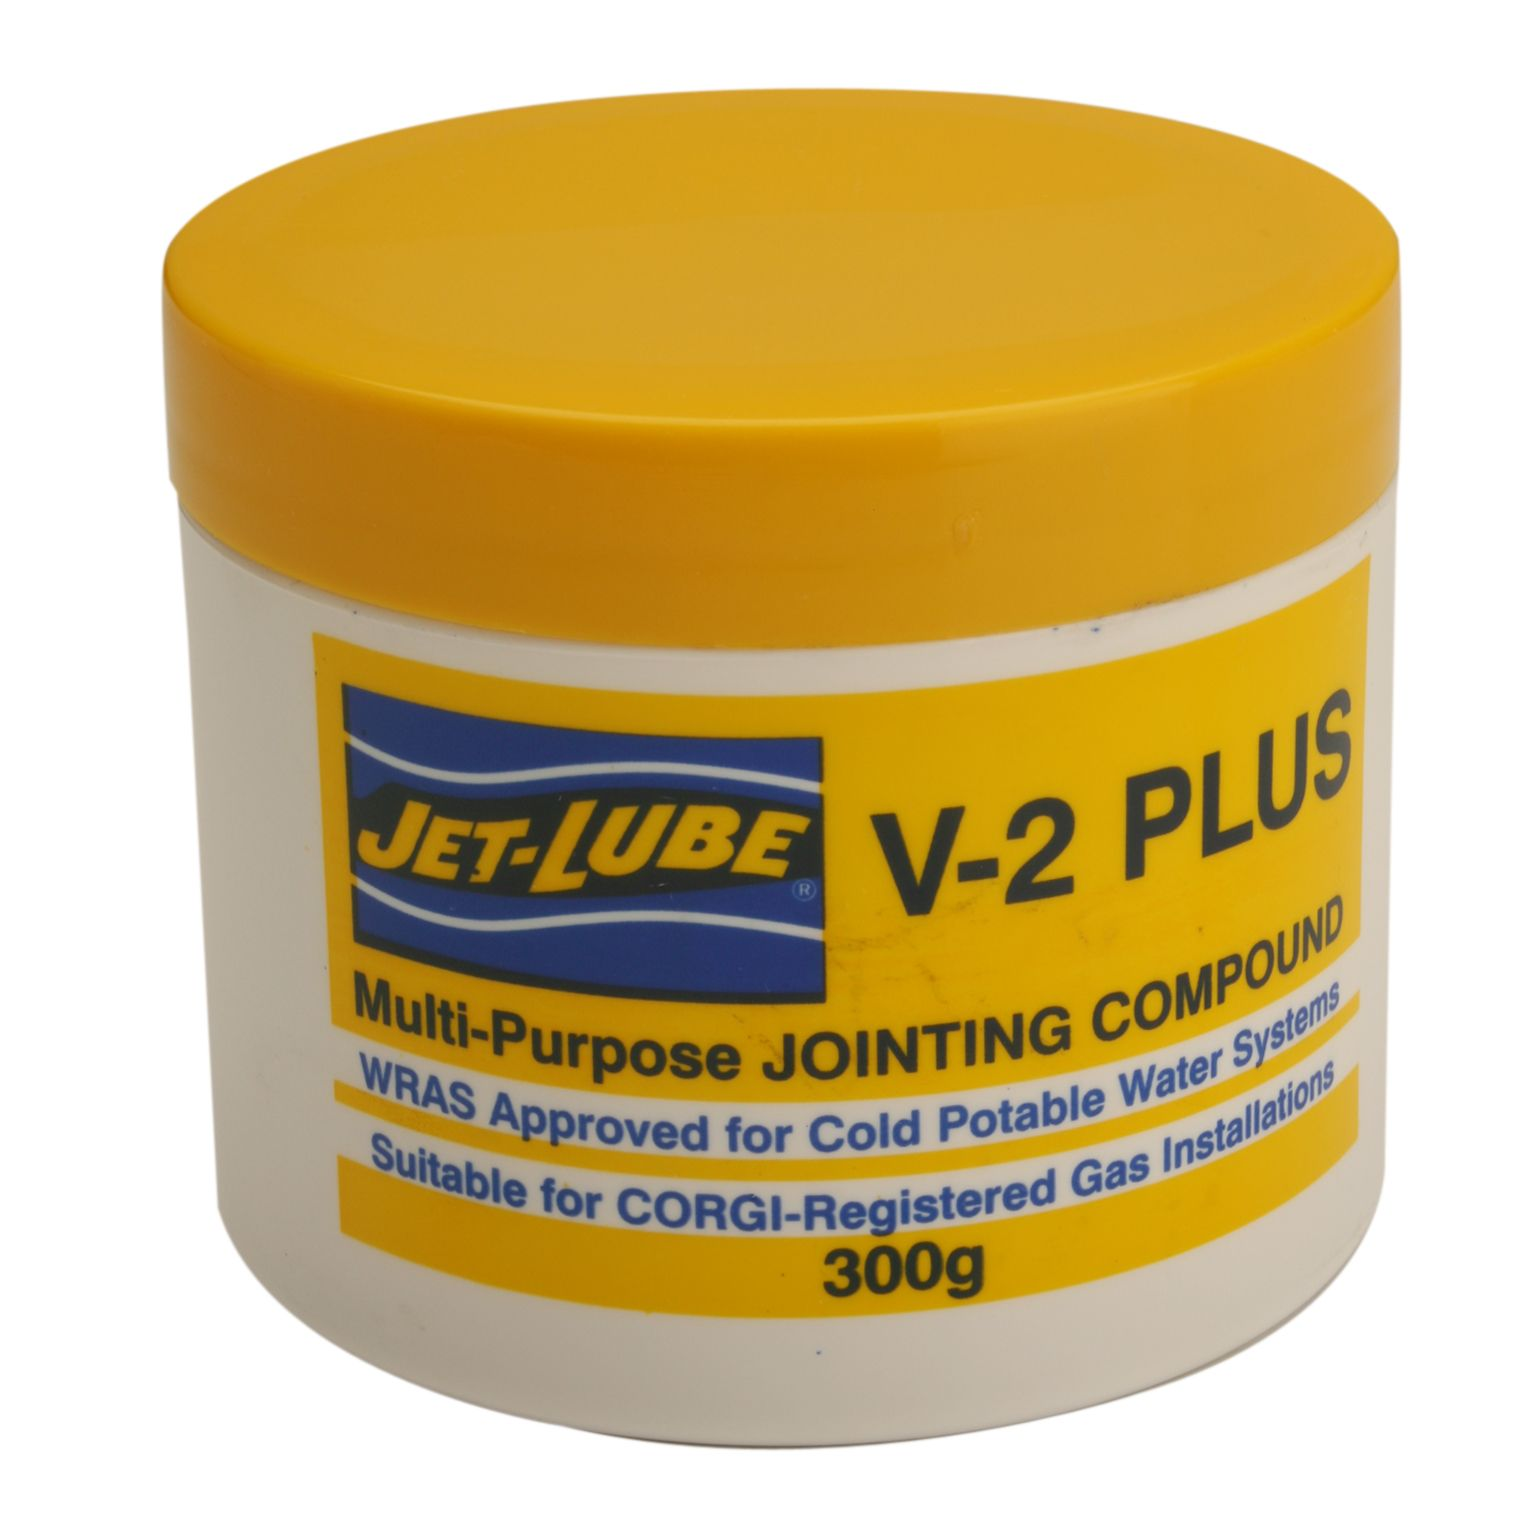 Jet Lube Jointing Compound 300 G Departments Diy At B Amp Q